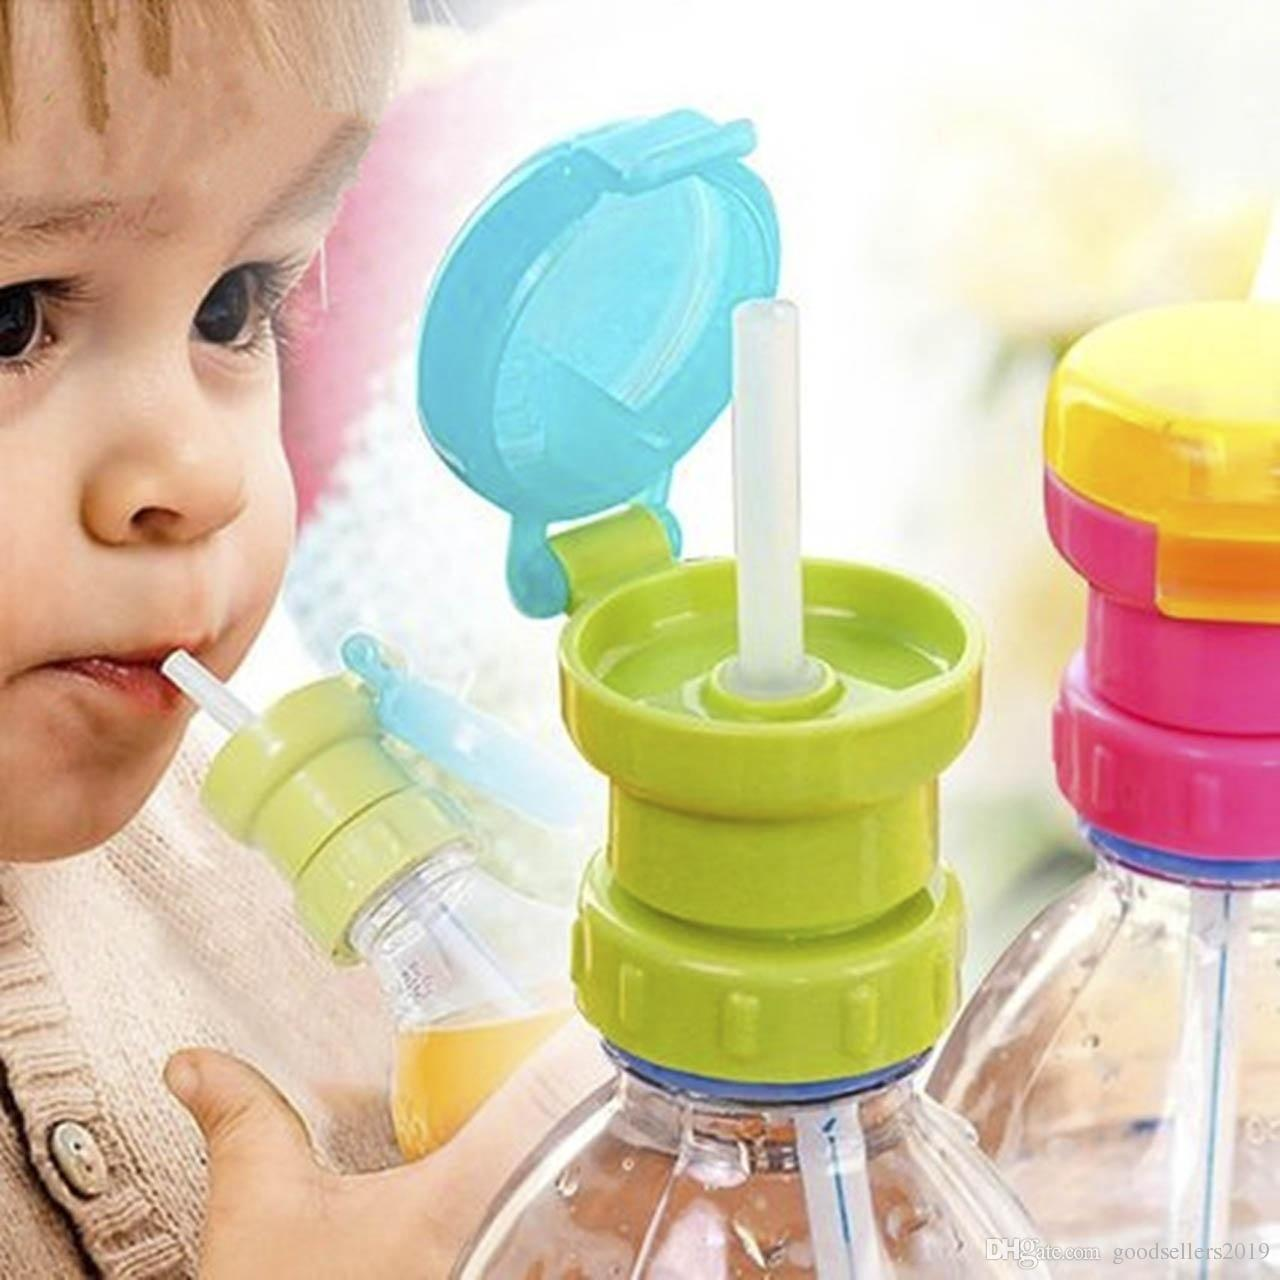 Phrase... super, an adult drinking from a baby bottle consider, that